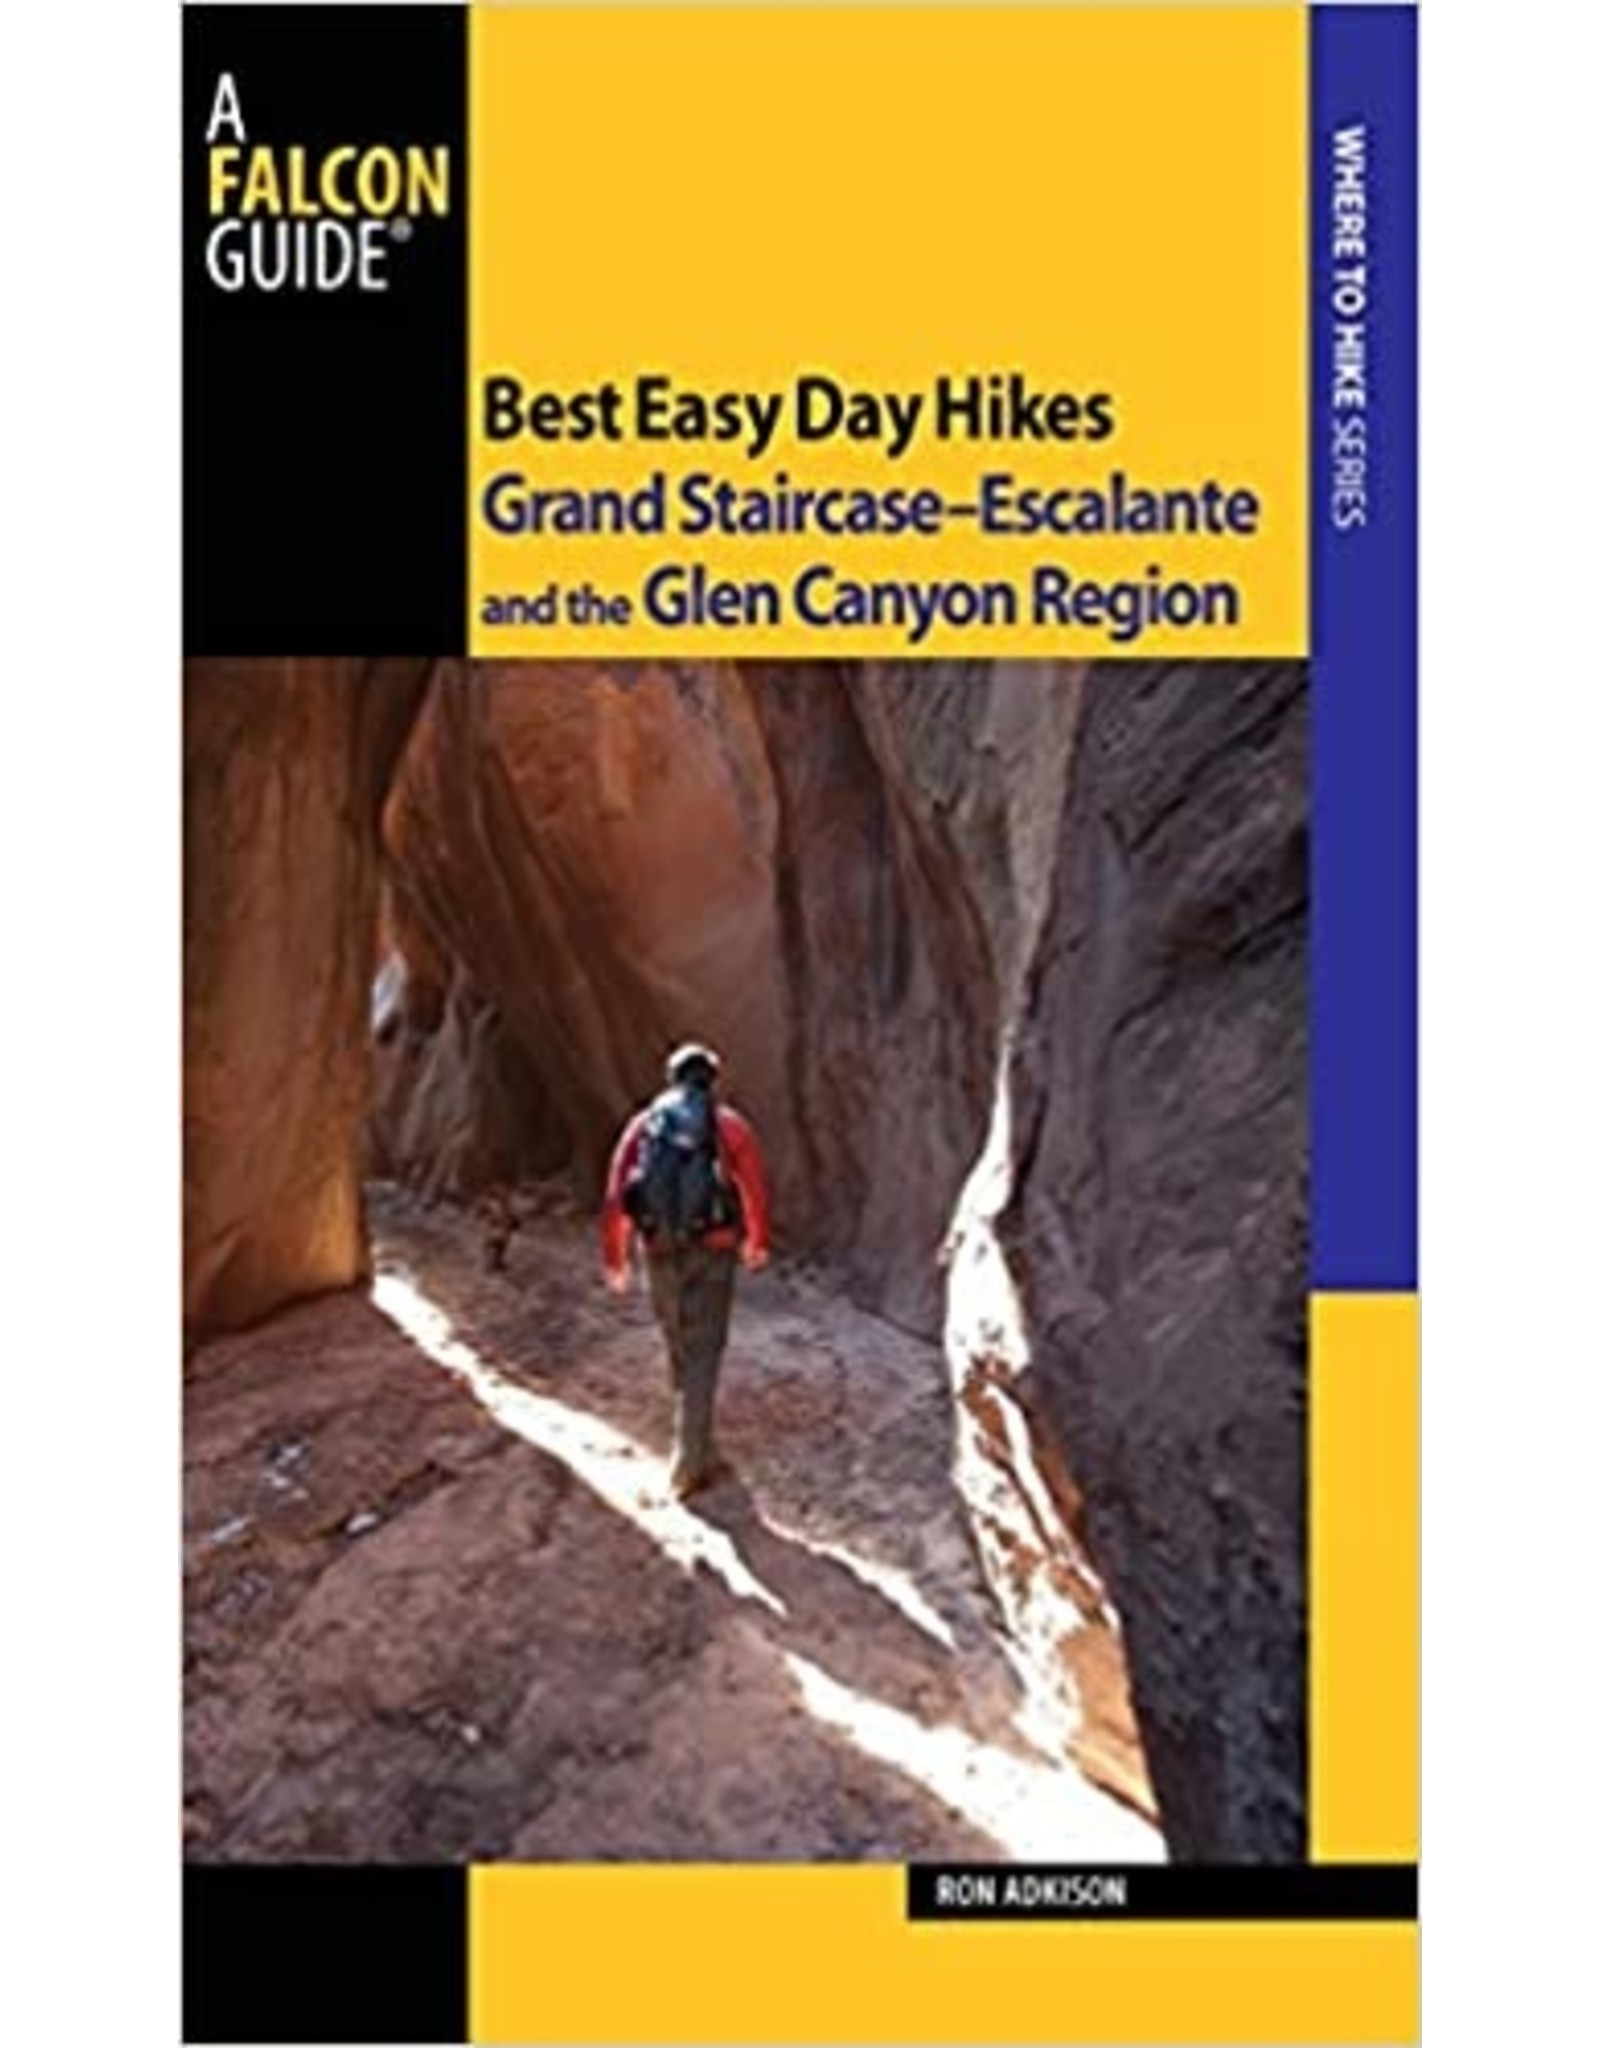 NATIONAL BOOK NETWRK Best Easy Day Hikes Grand Staircase--Escalante and the Glen Canyon Region, 2nd (Best Easy Day Hikes Series) Paperback